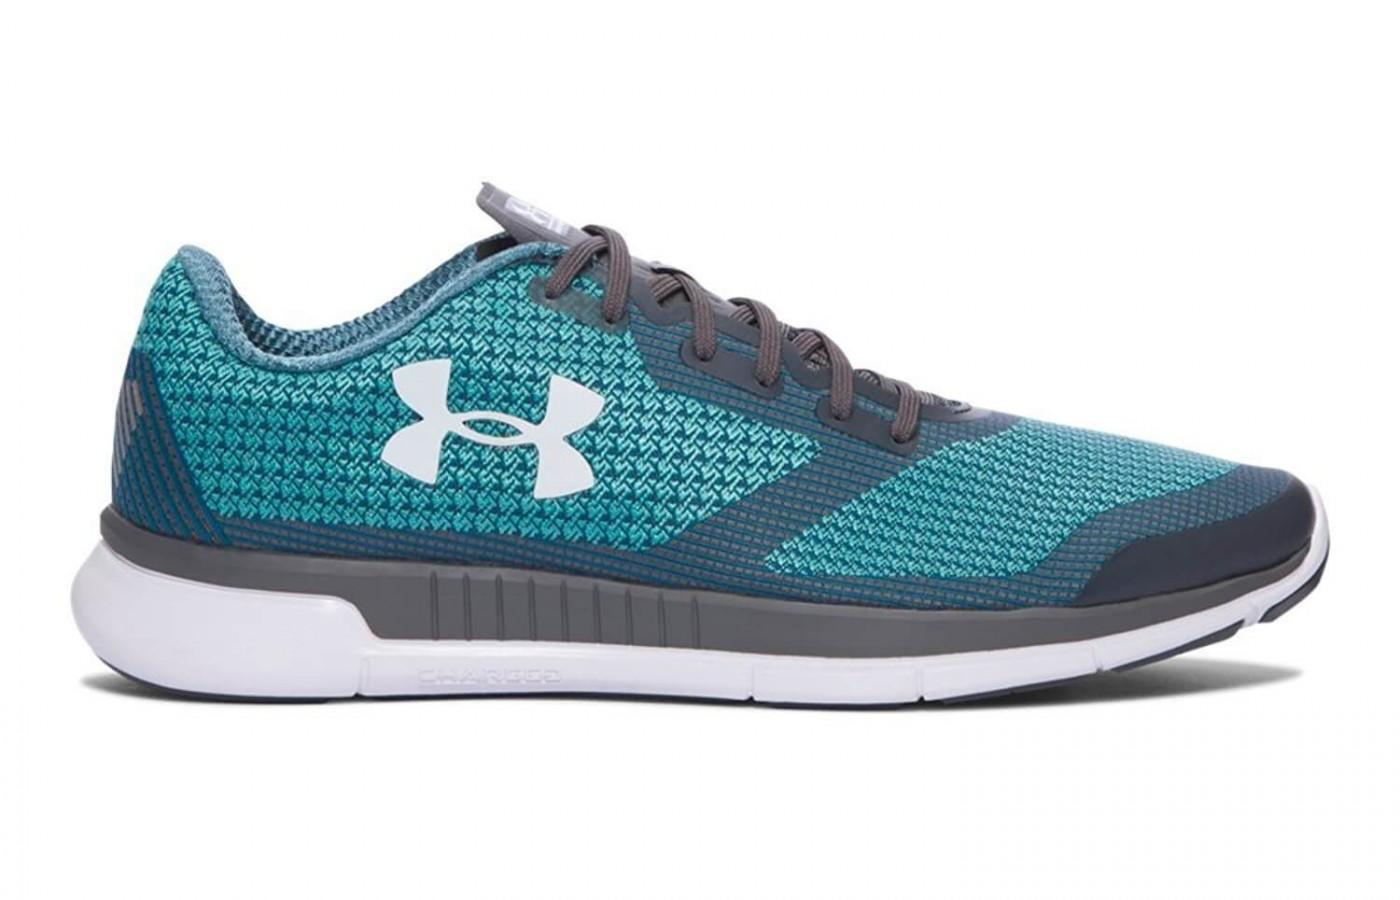 the Under Armour Charged Lightning is an affordable, stylish everyday trainer